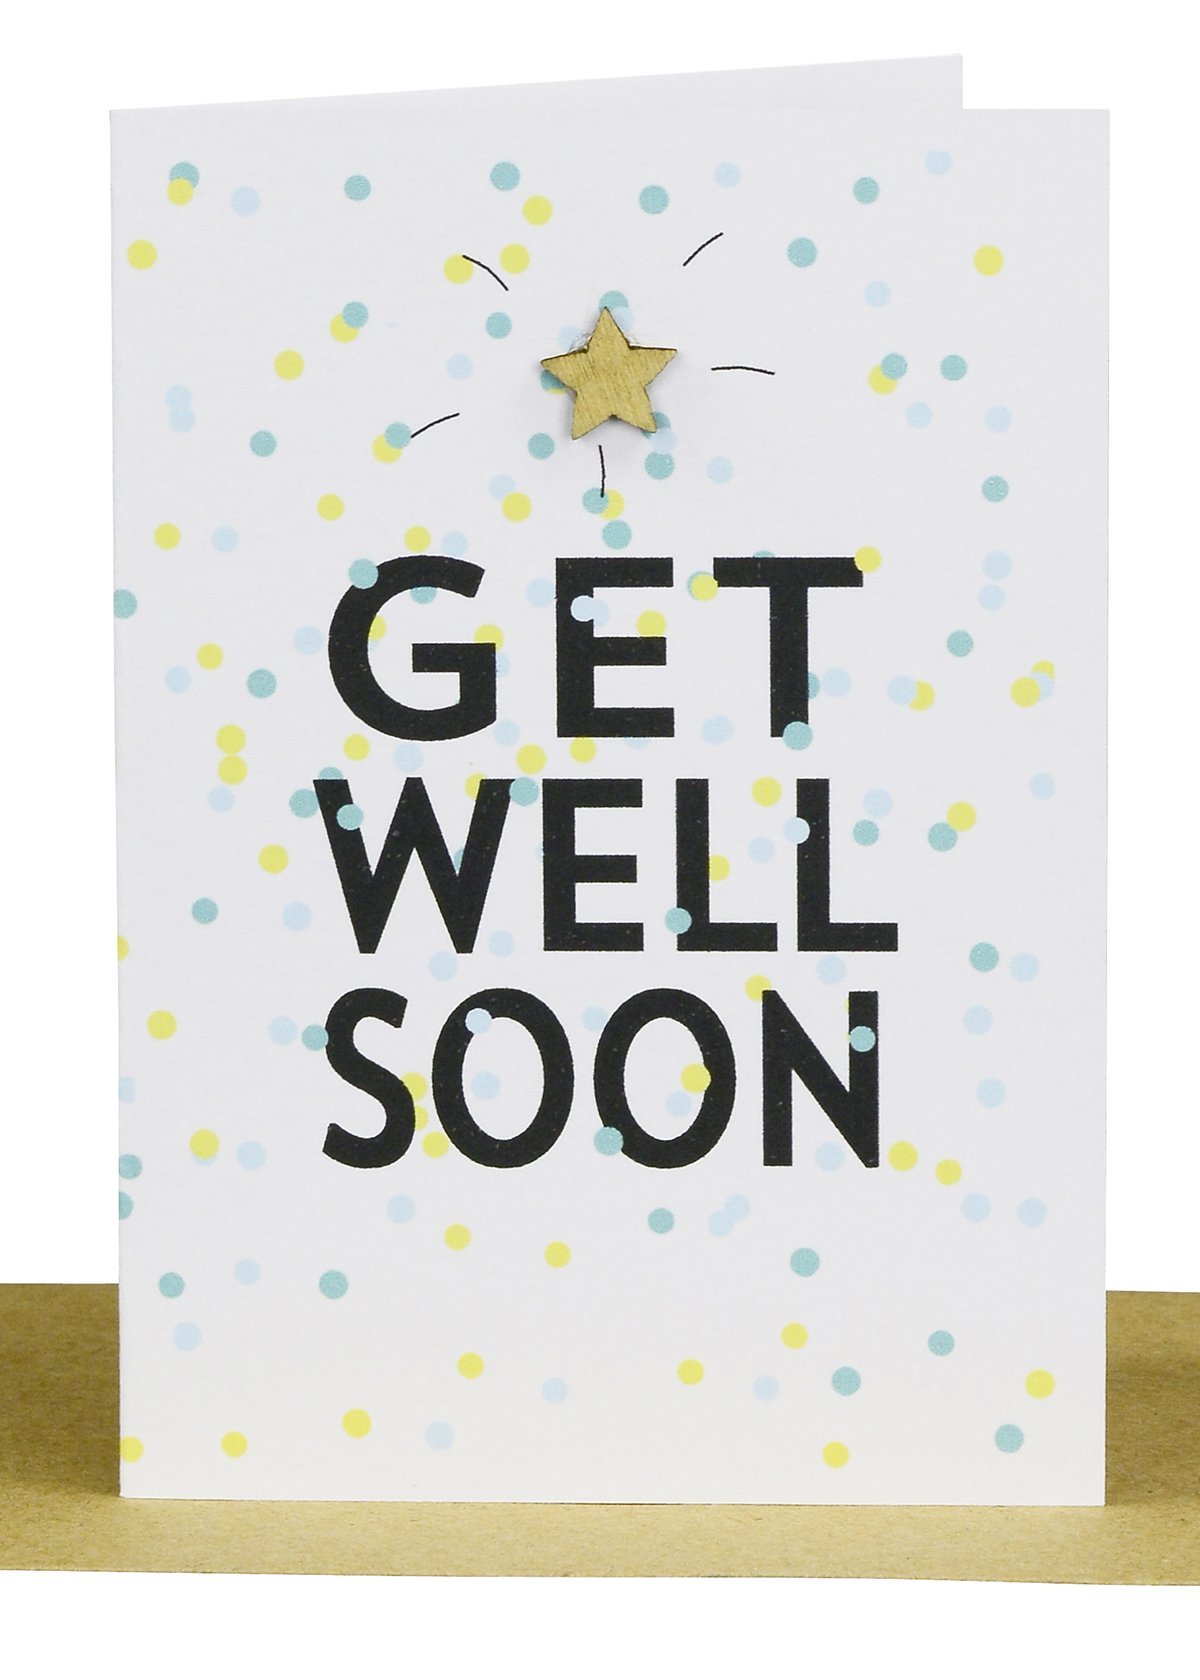 wholesale get well soon gift card